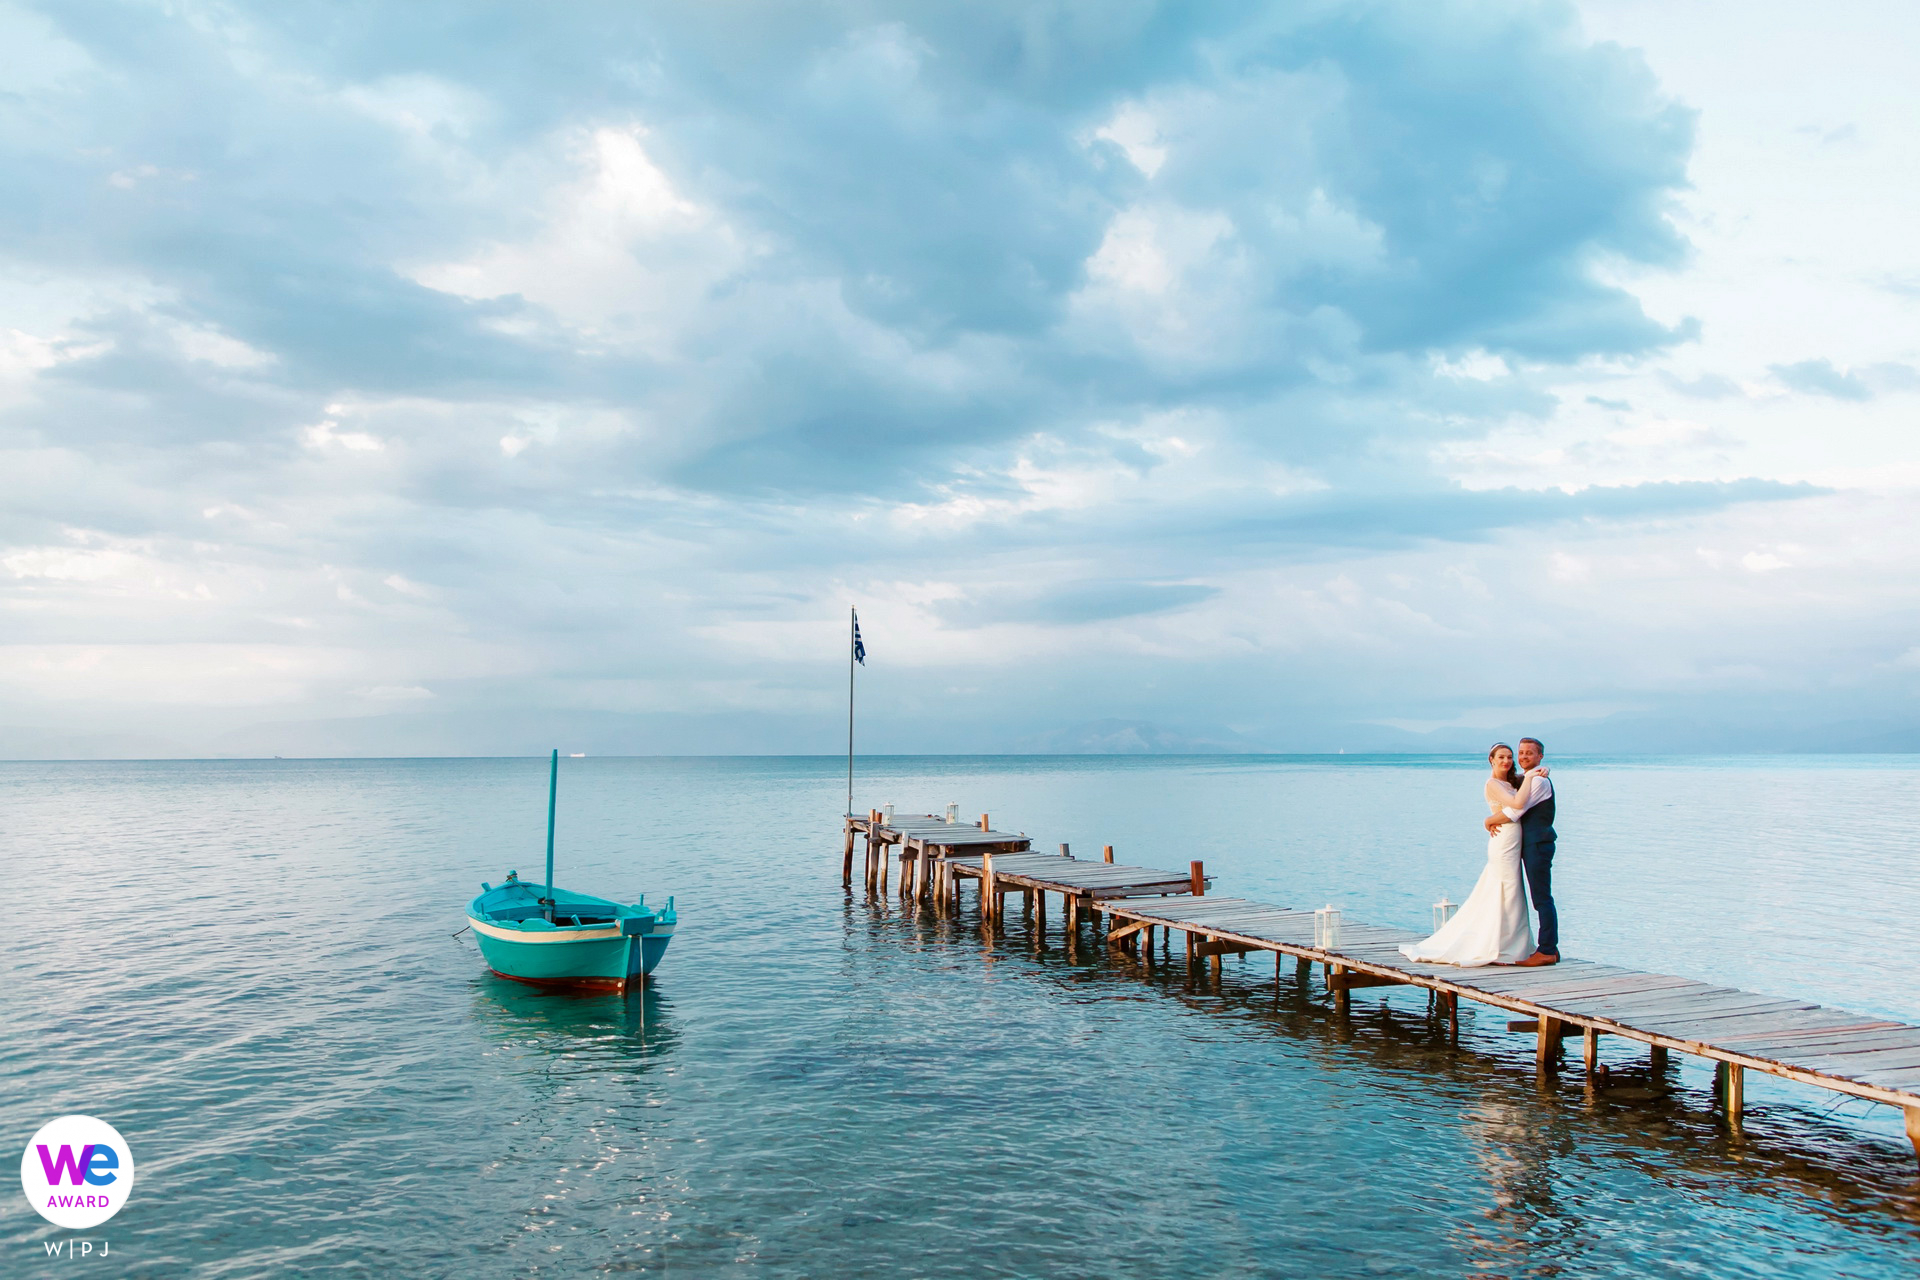 Boukari - Corfu - Ionian Islands, Greece Elopement Photo Image Award | The clouds envelop the couple in a warm embrace